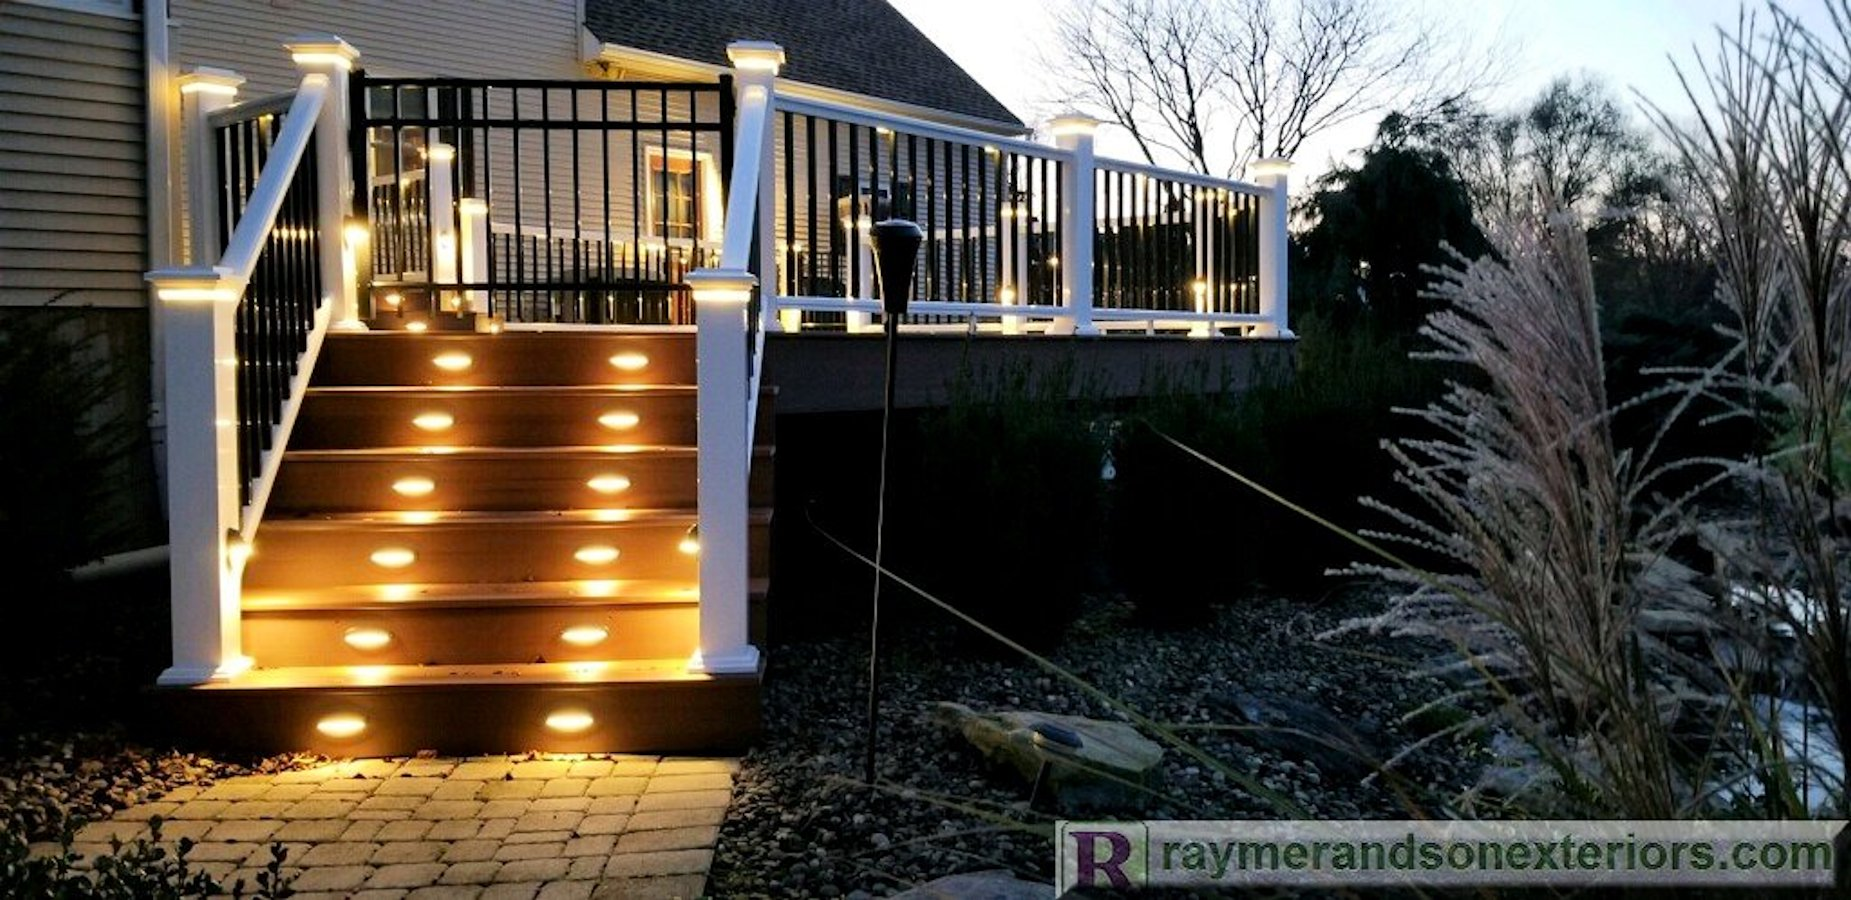 Azek Vinyl Deck With LED Lights